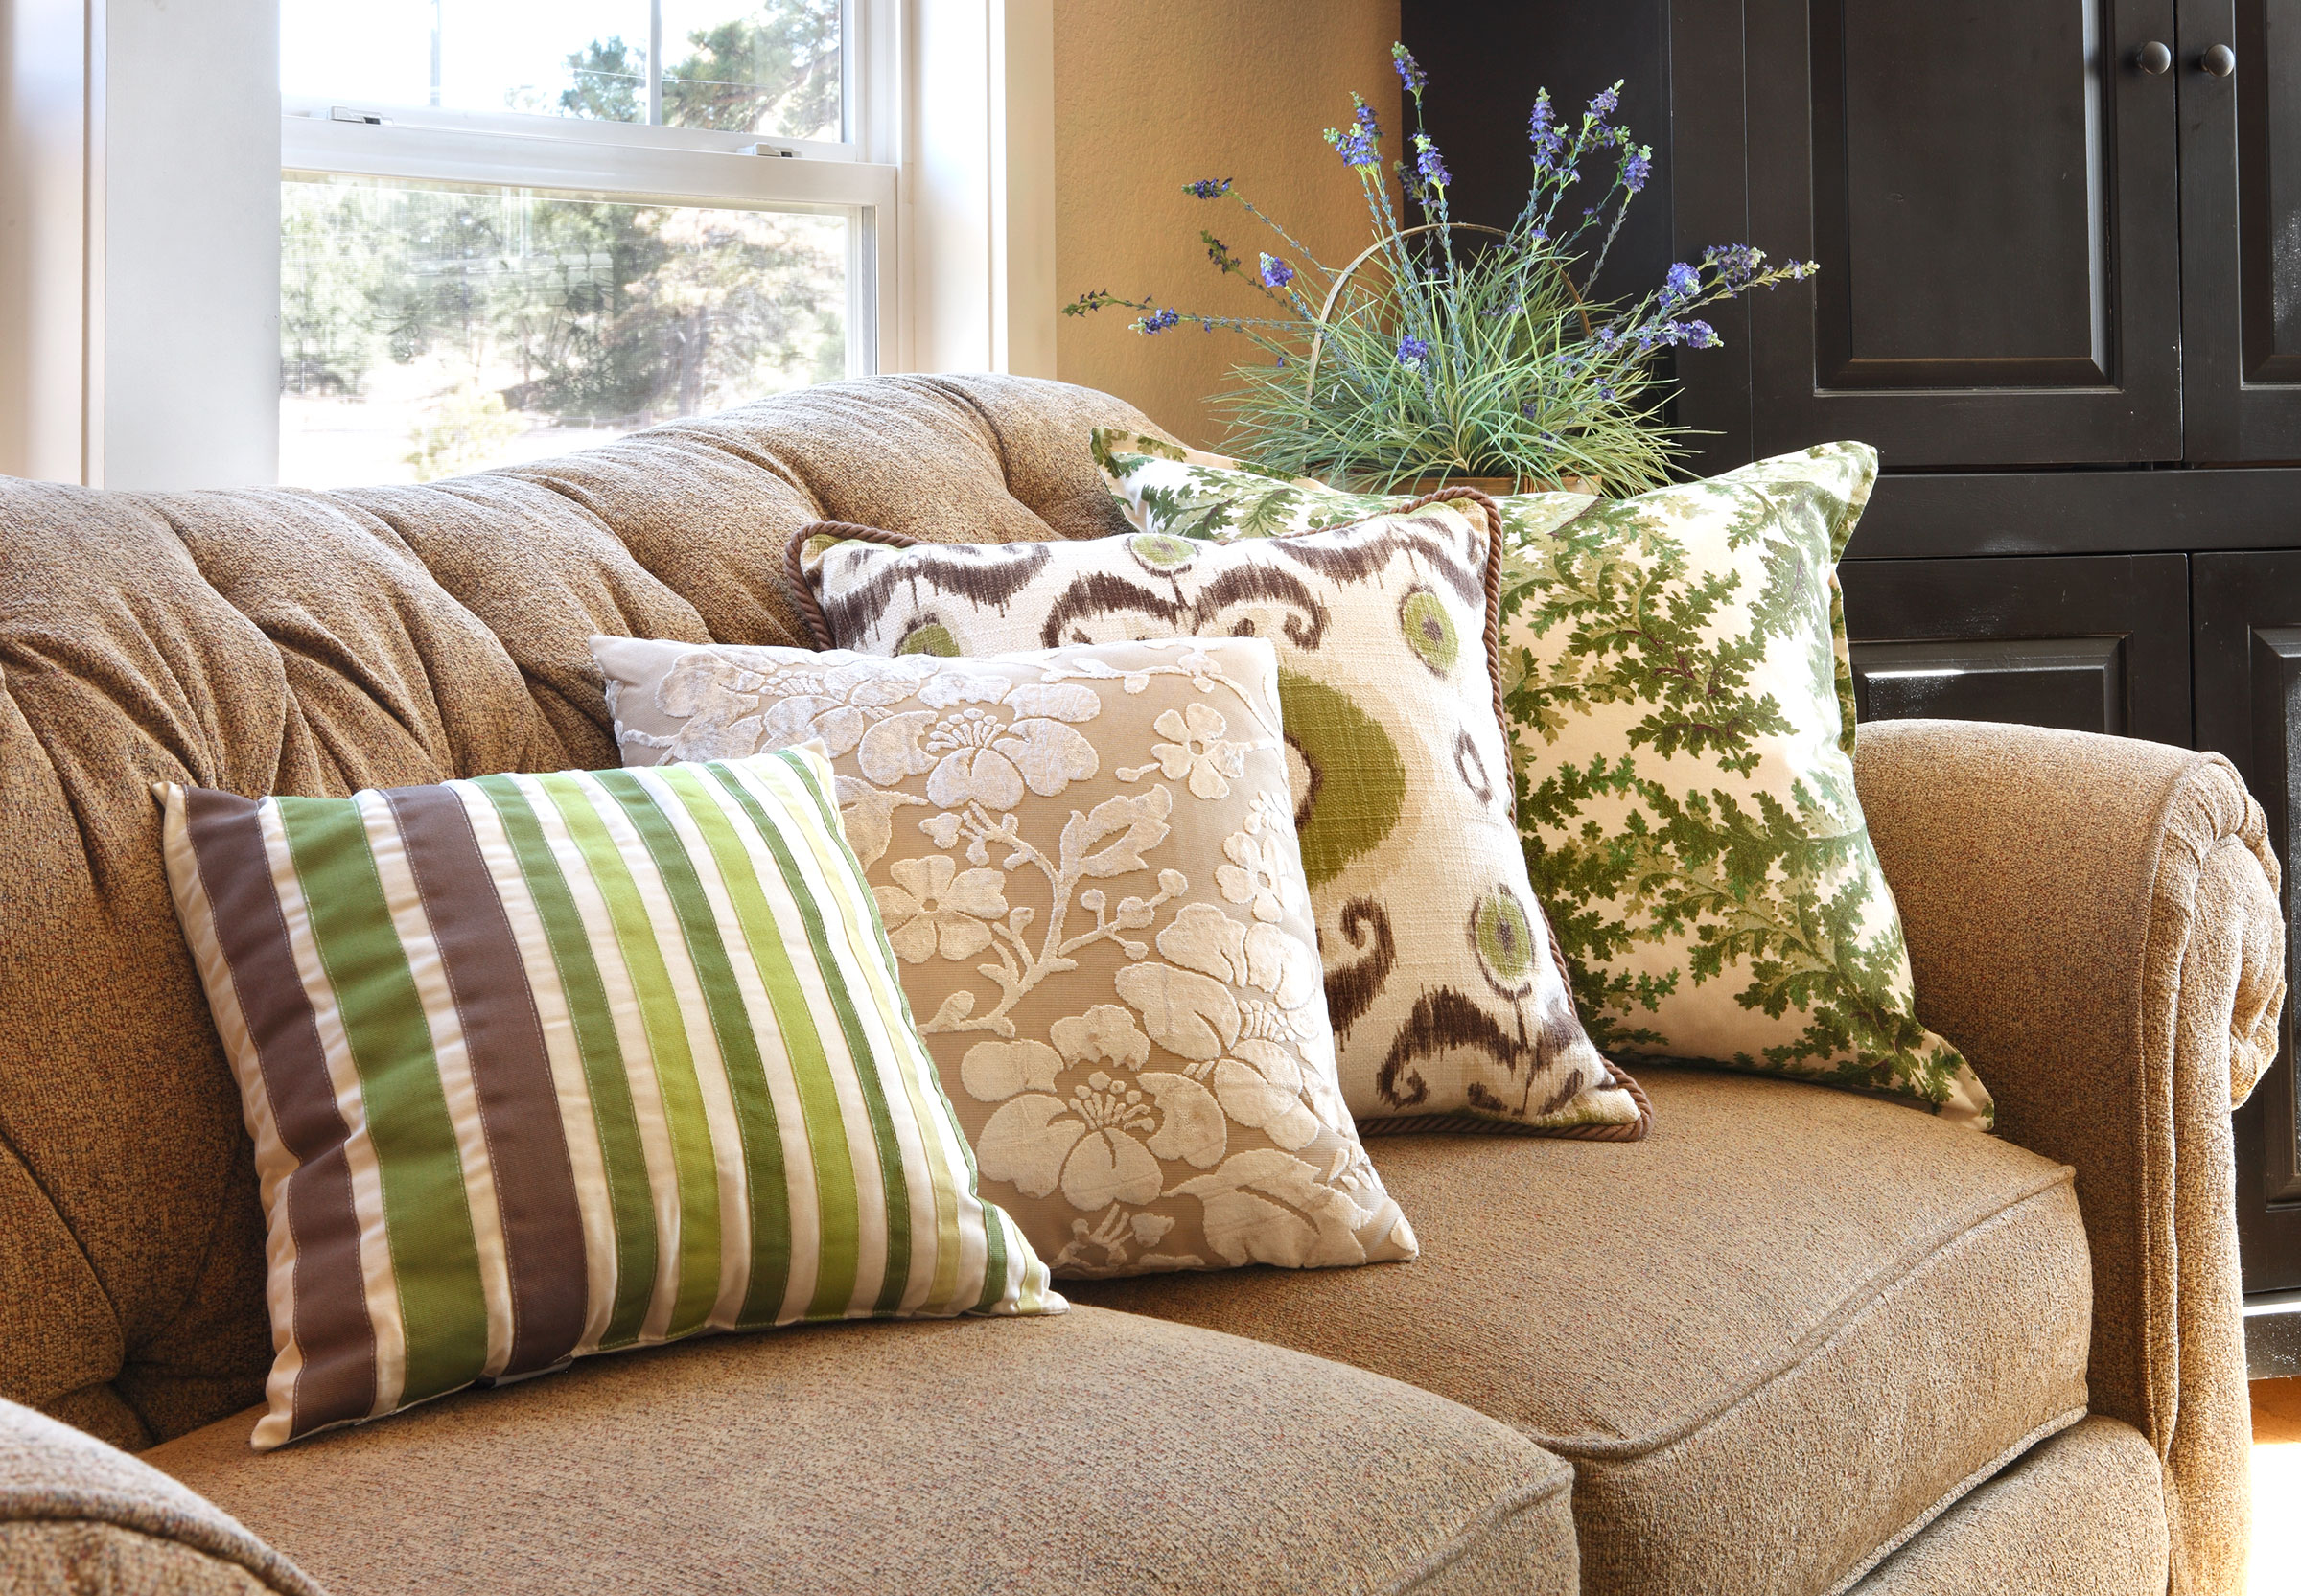 Sitting-Room-Pillows